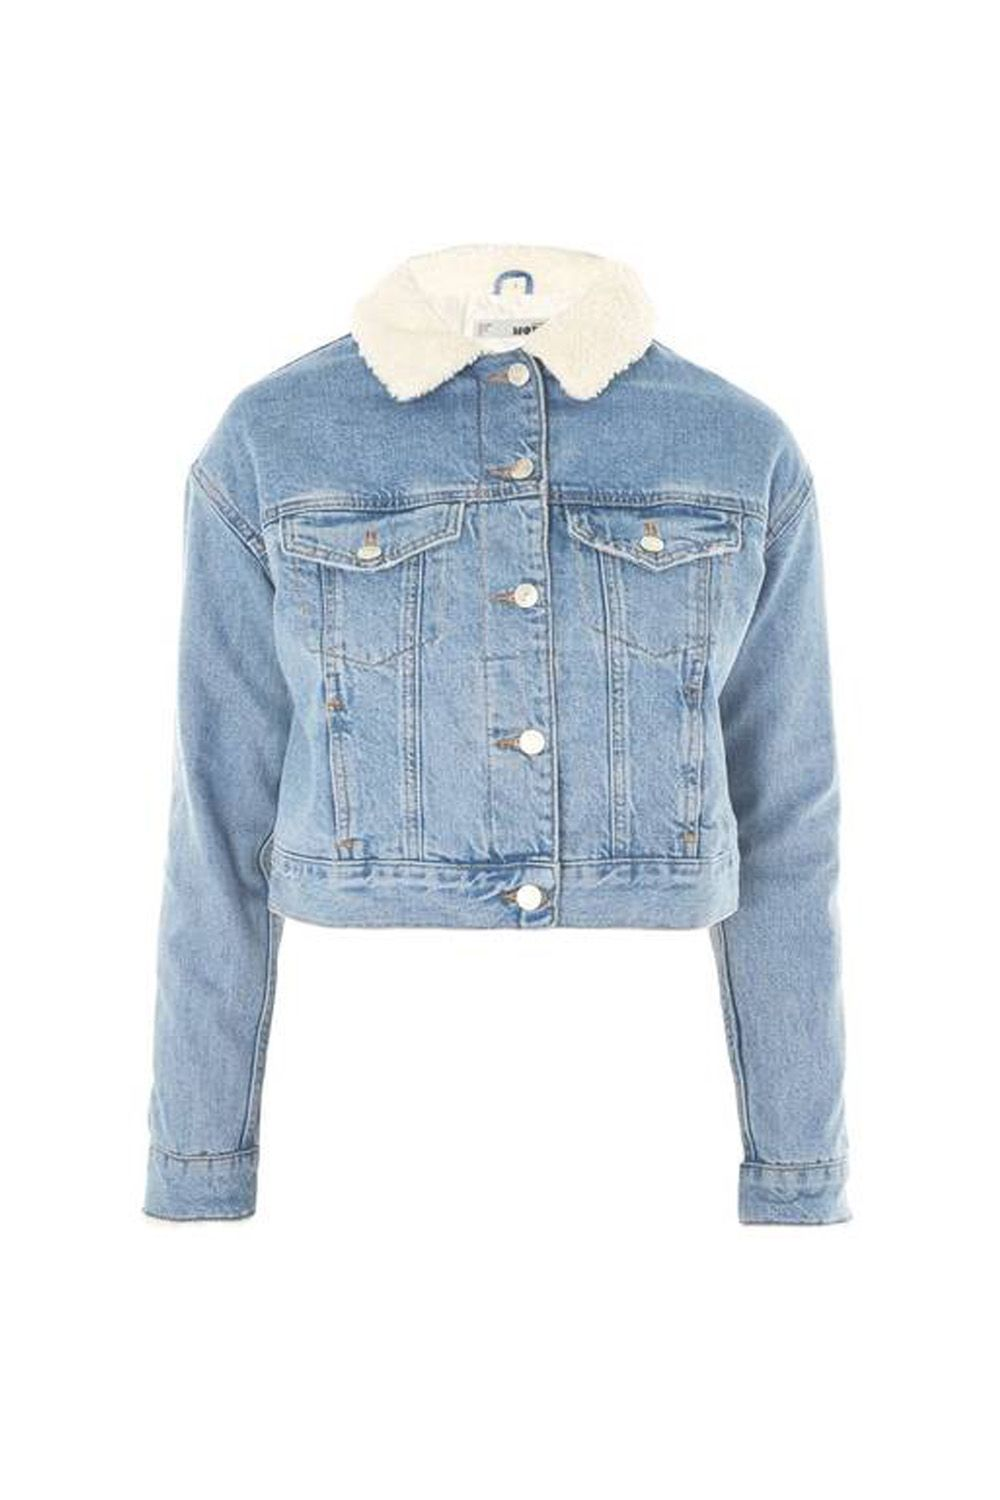 a601b69a1 18 Cute Denim Jacket Outfits for Women - Best Jean Jackets 2018